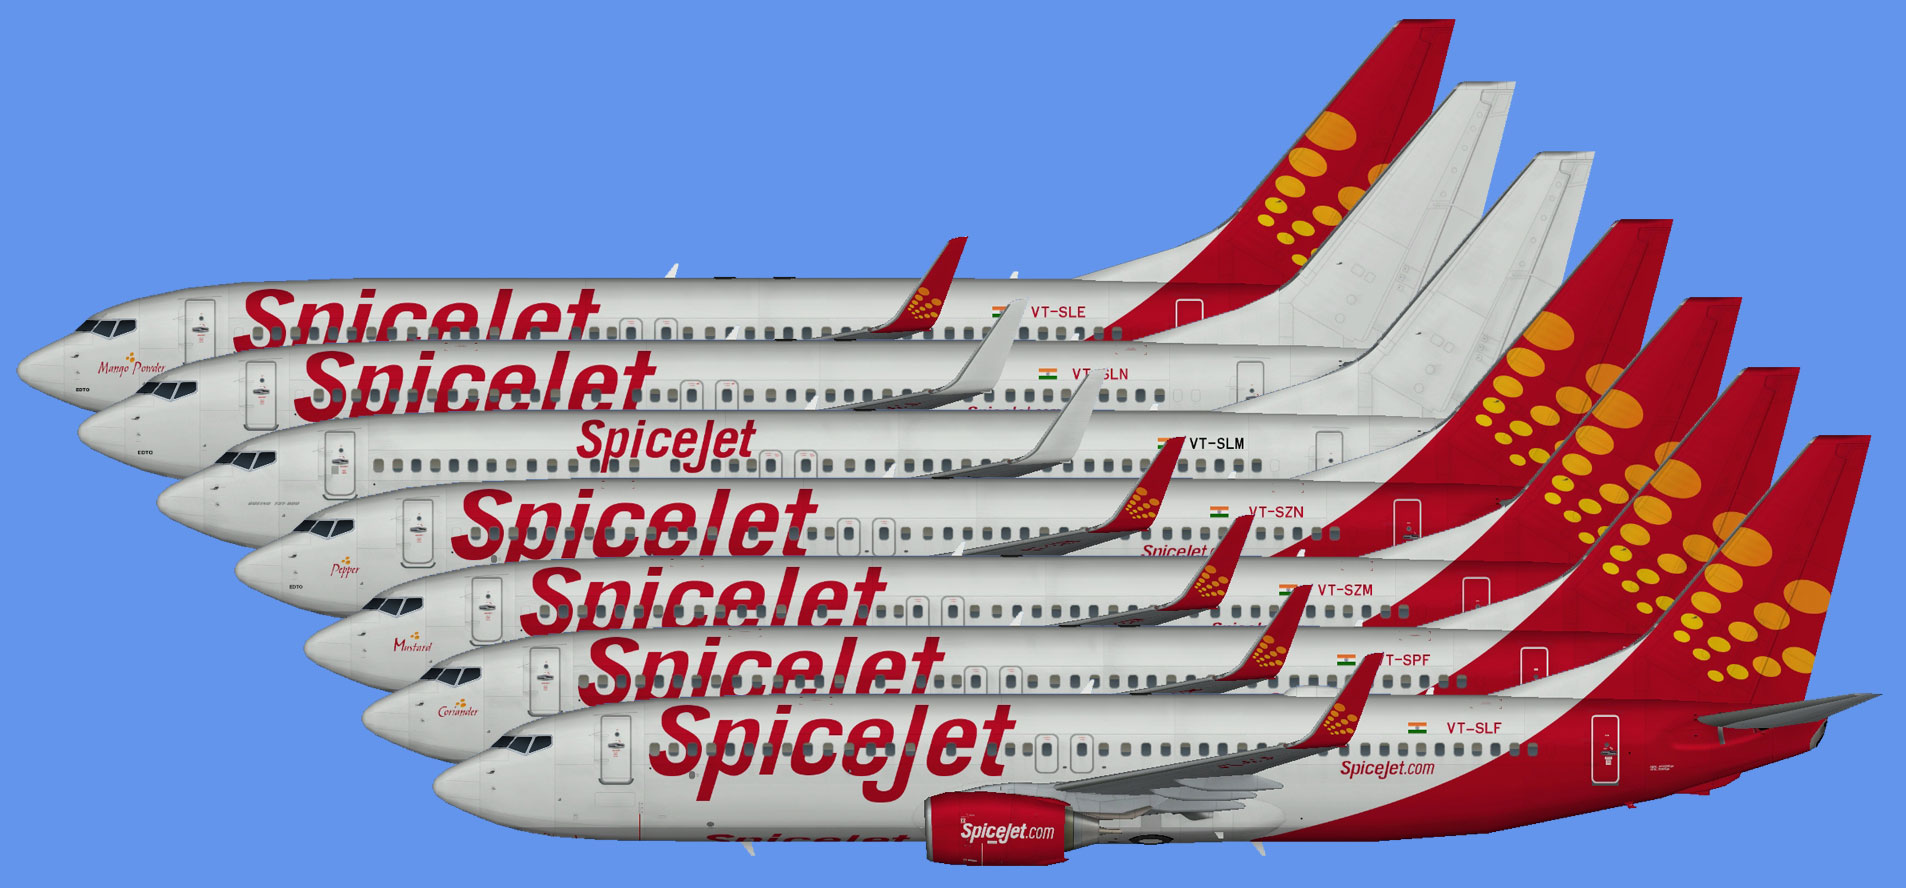 Spicejet 737-800 fleet -part1